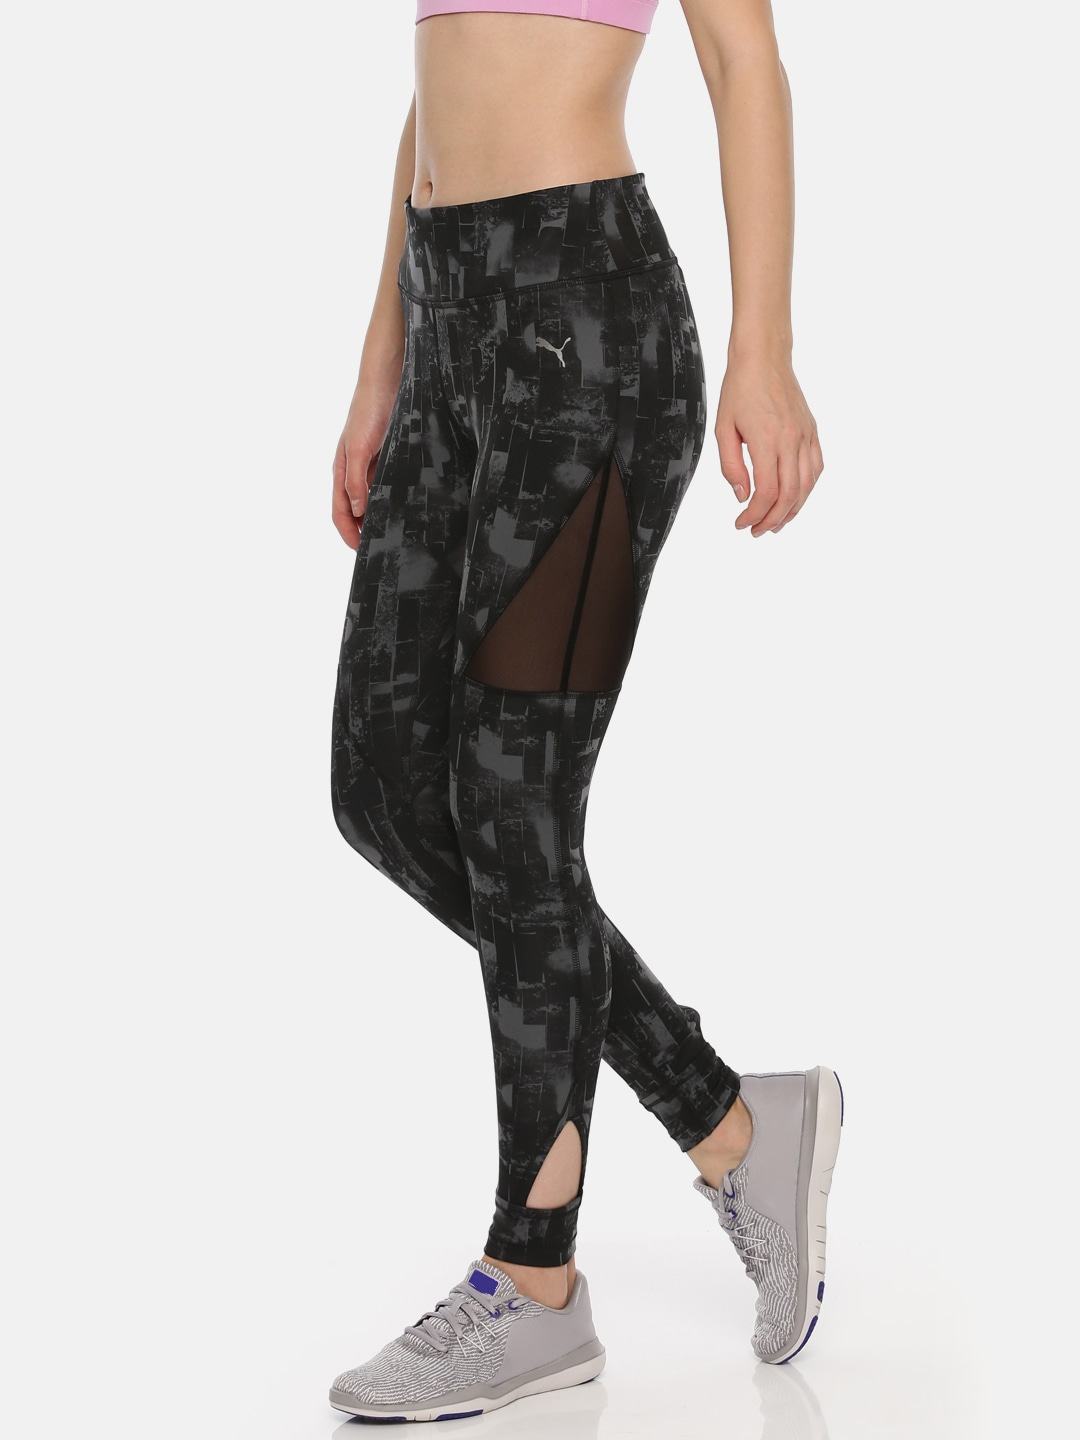 Puma Black Printed Explosive 78 Graphic DRY CELL Tights